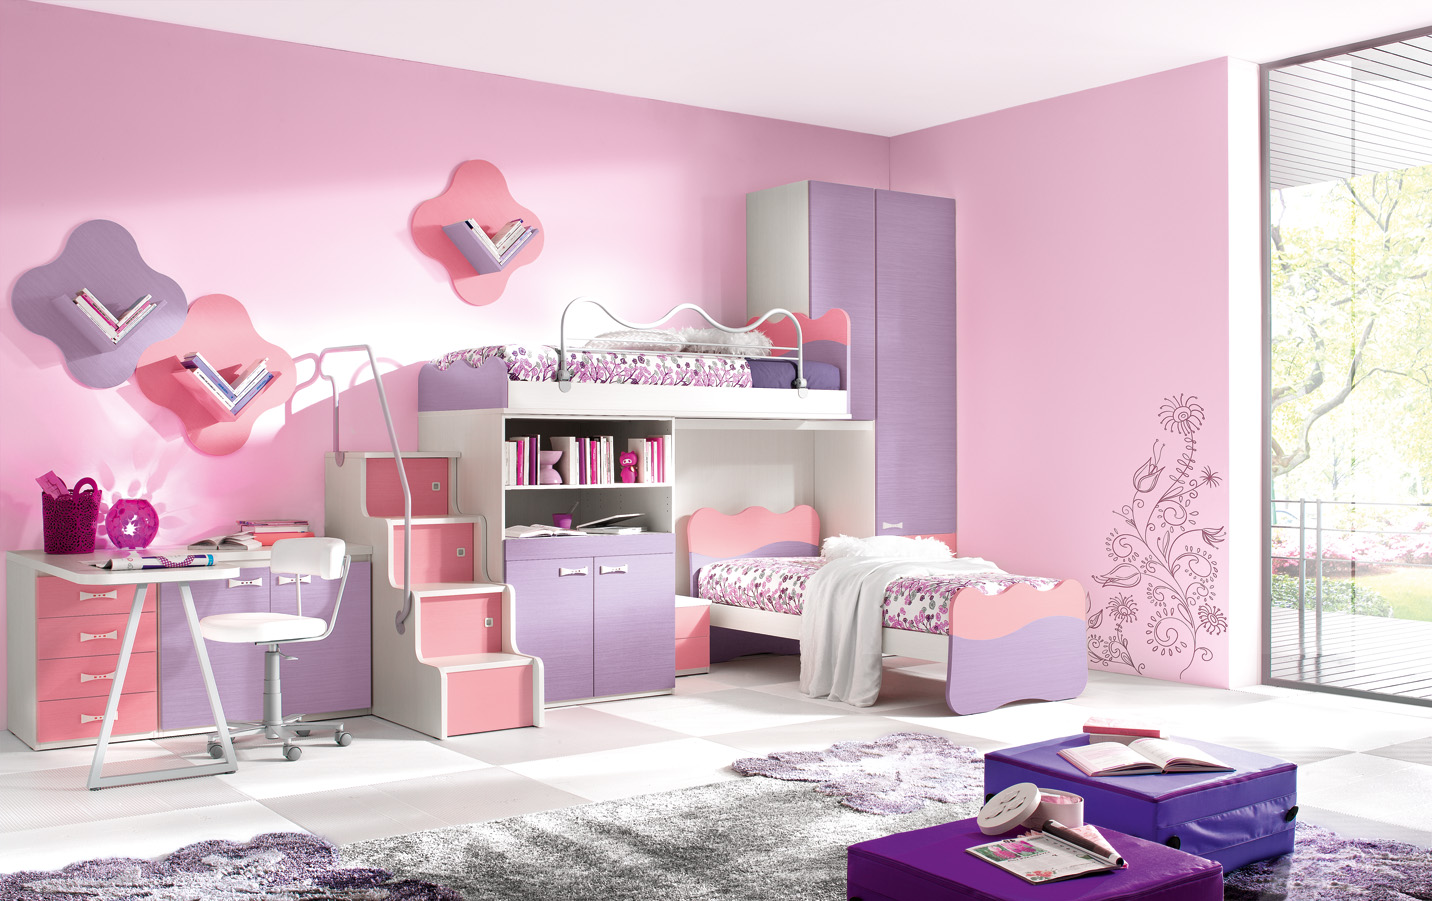 Colorful Kids Bedroom Ideas In Small Design : Delightful Modern Kids Bedroom Ideas With Bunk Beds